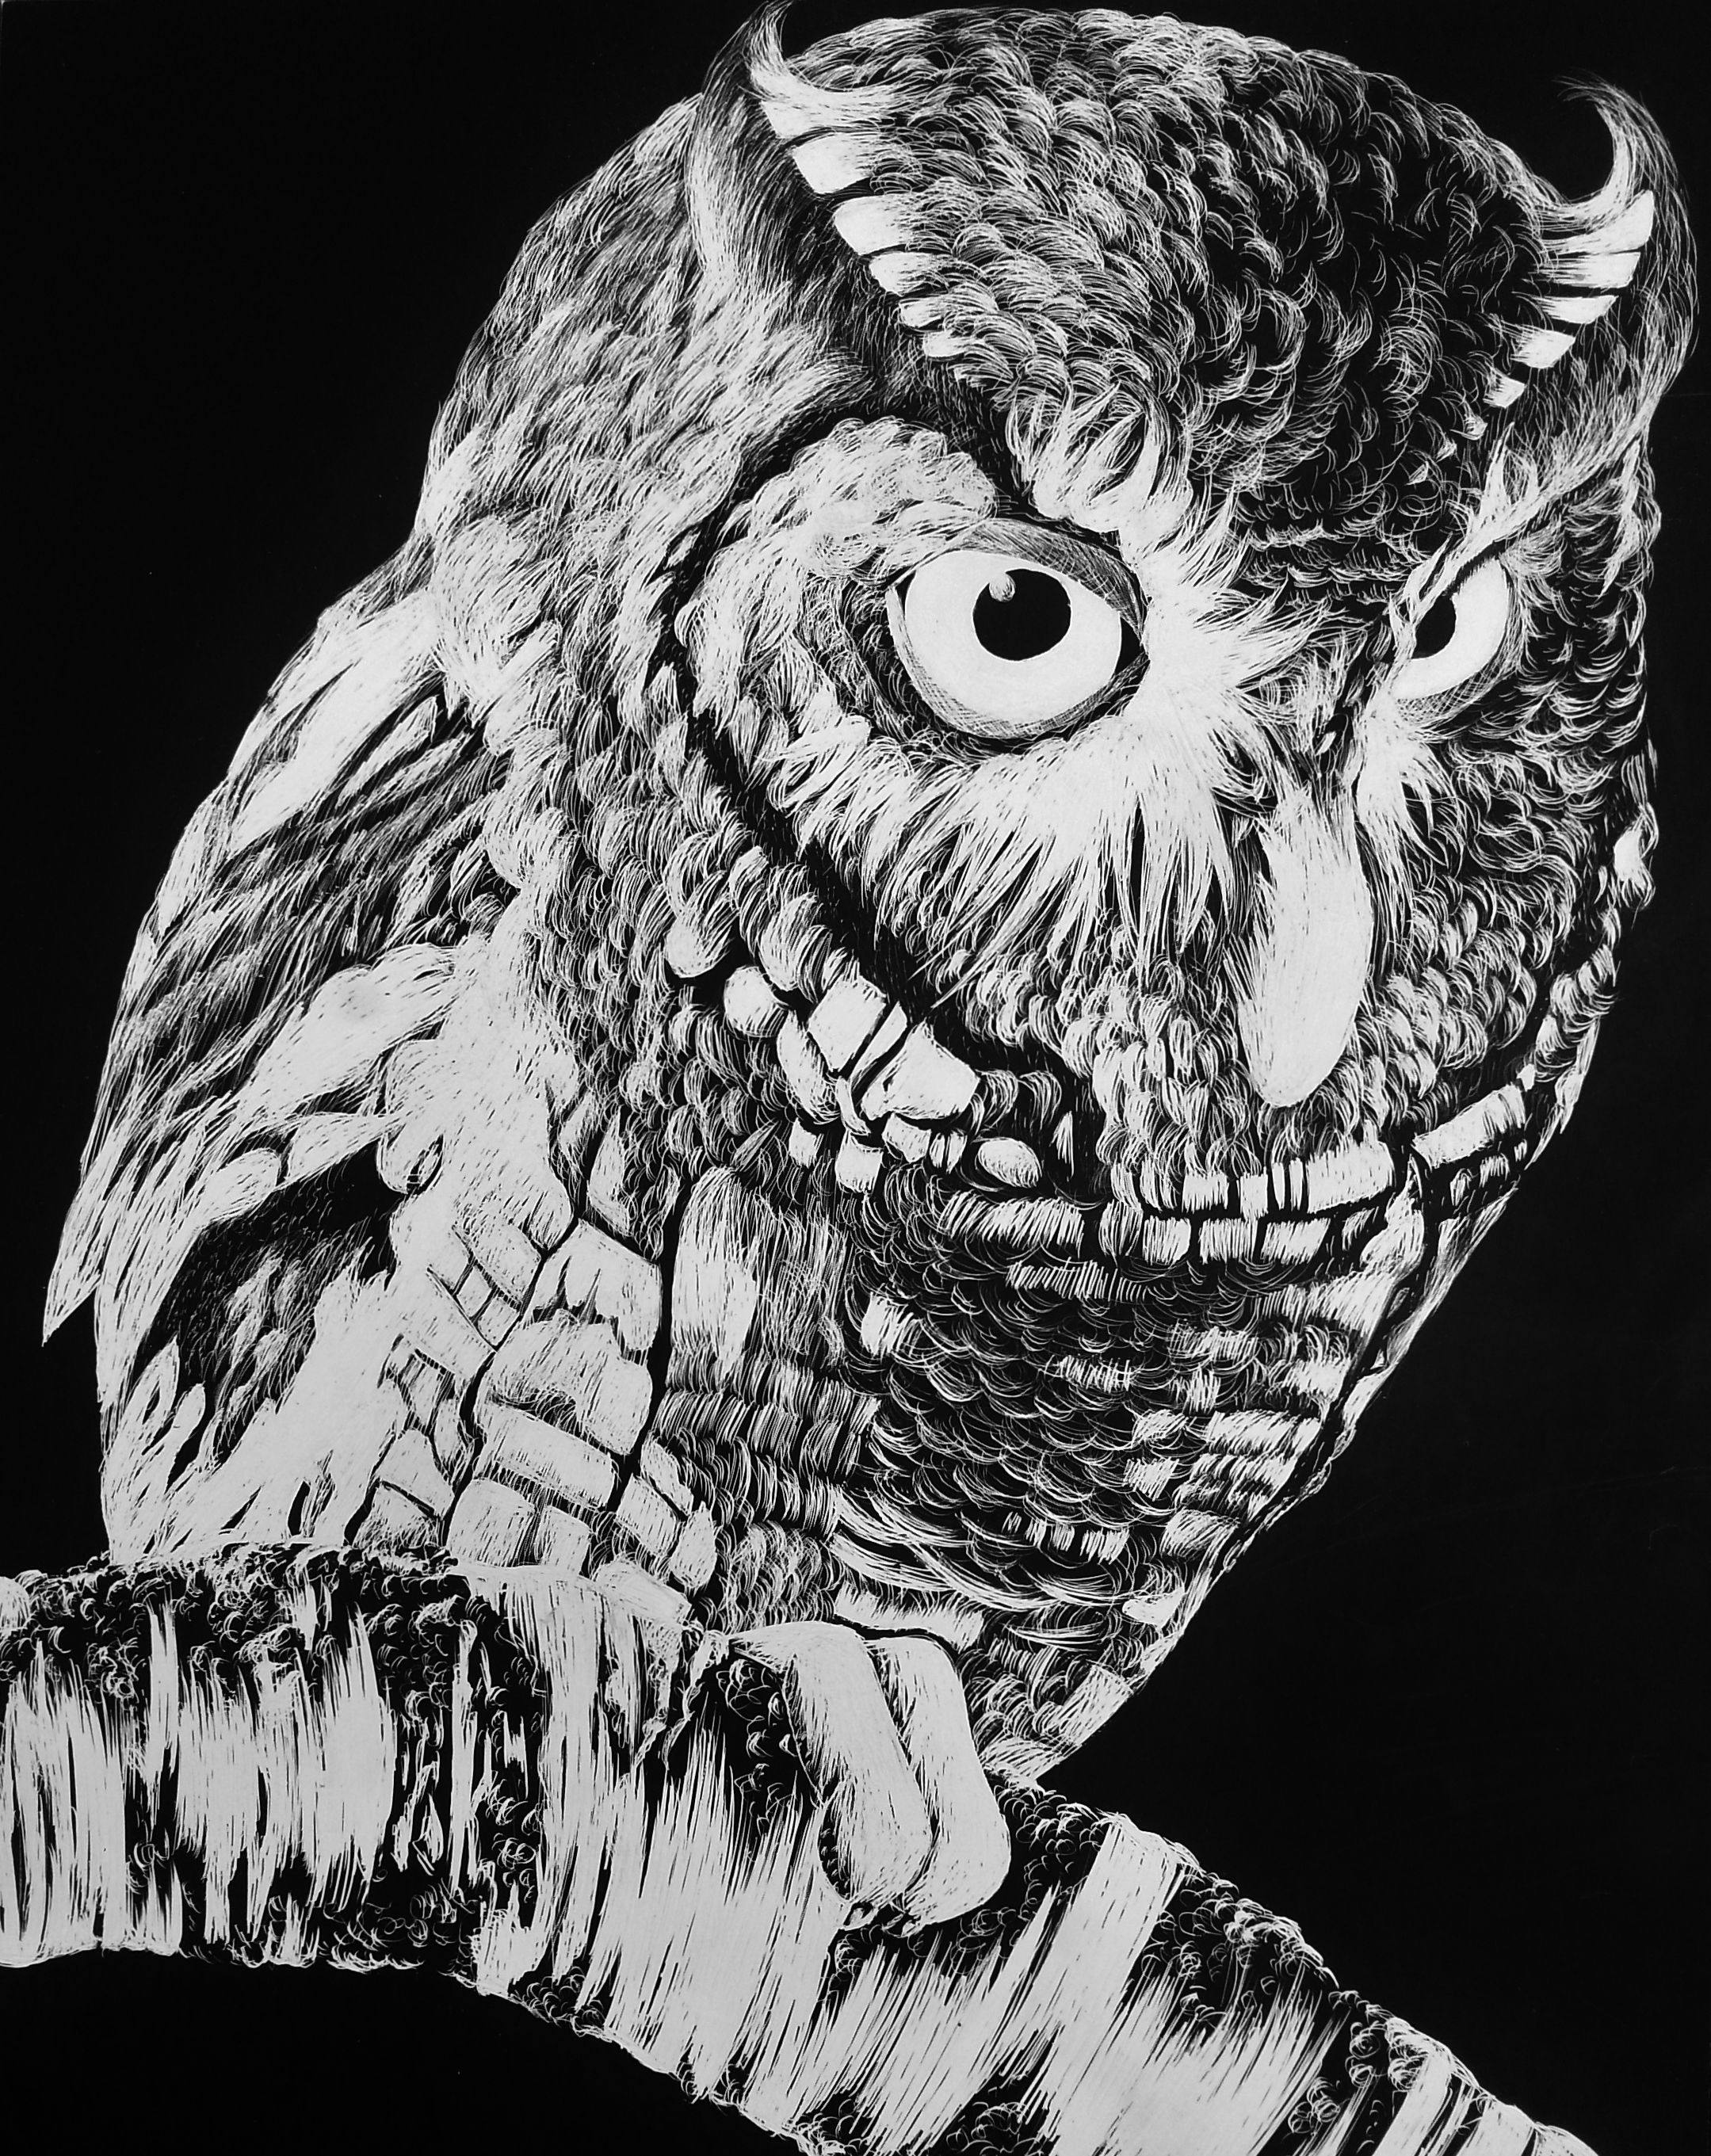 Owl (2014) - PRINTS AVAILABLE